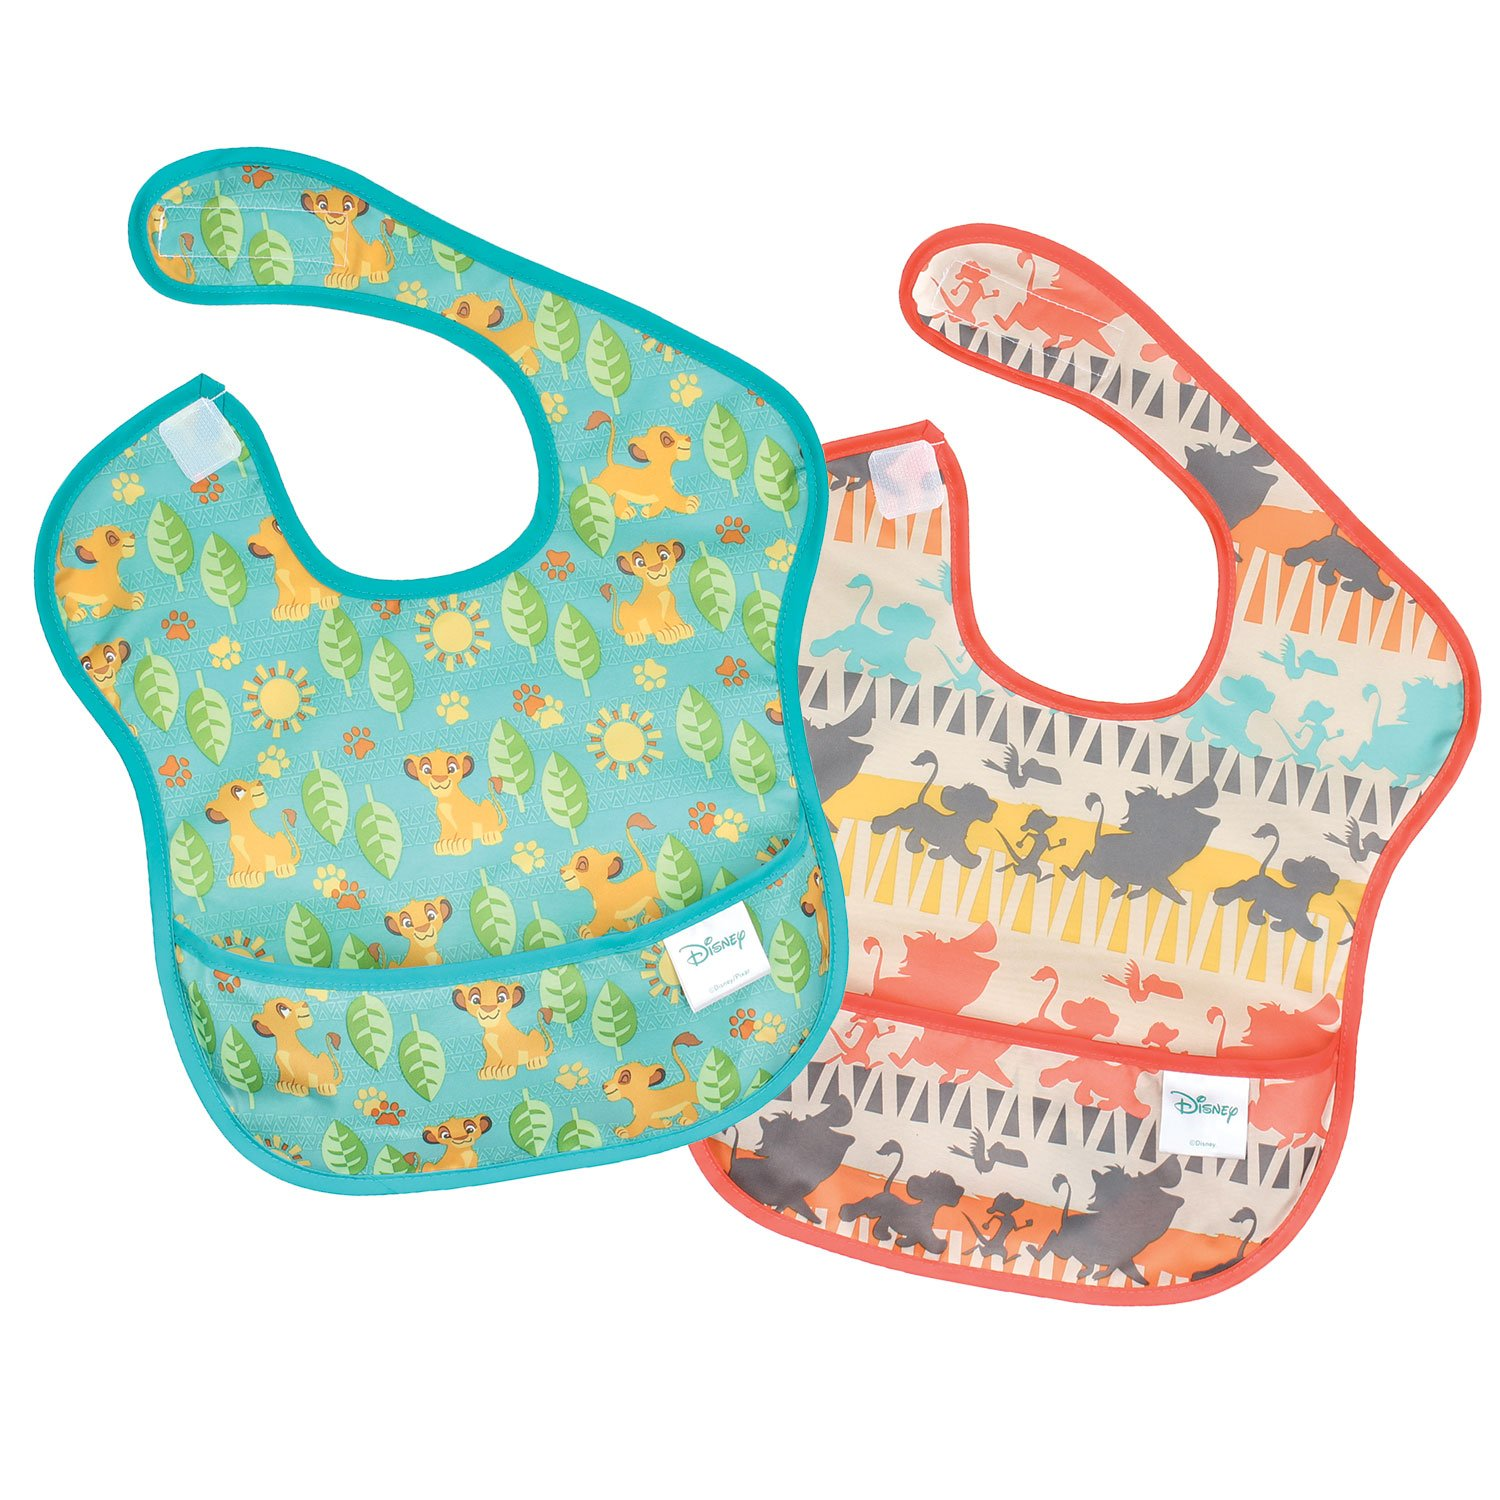 Bumkins Baby Bib, Disney Waterproof SuperBib 2 Pack, Lion King (Tribal/Simba) (6-24 Months)